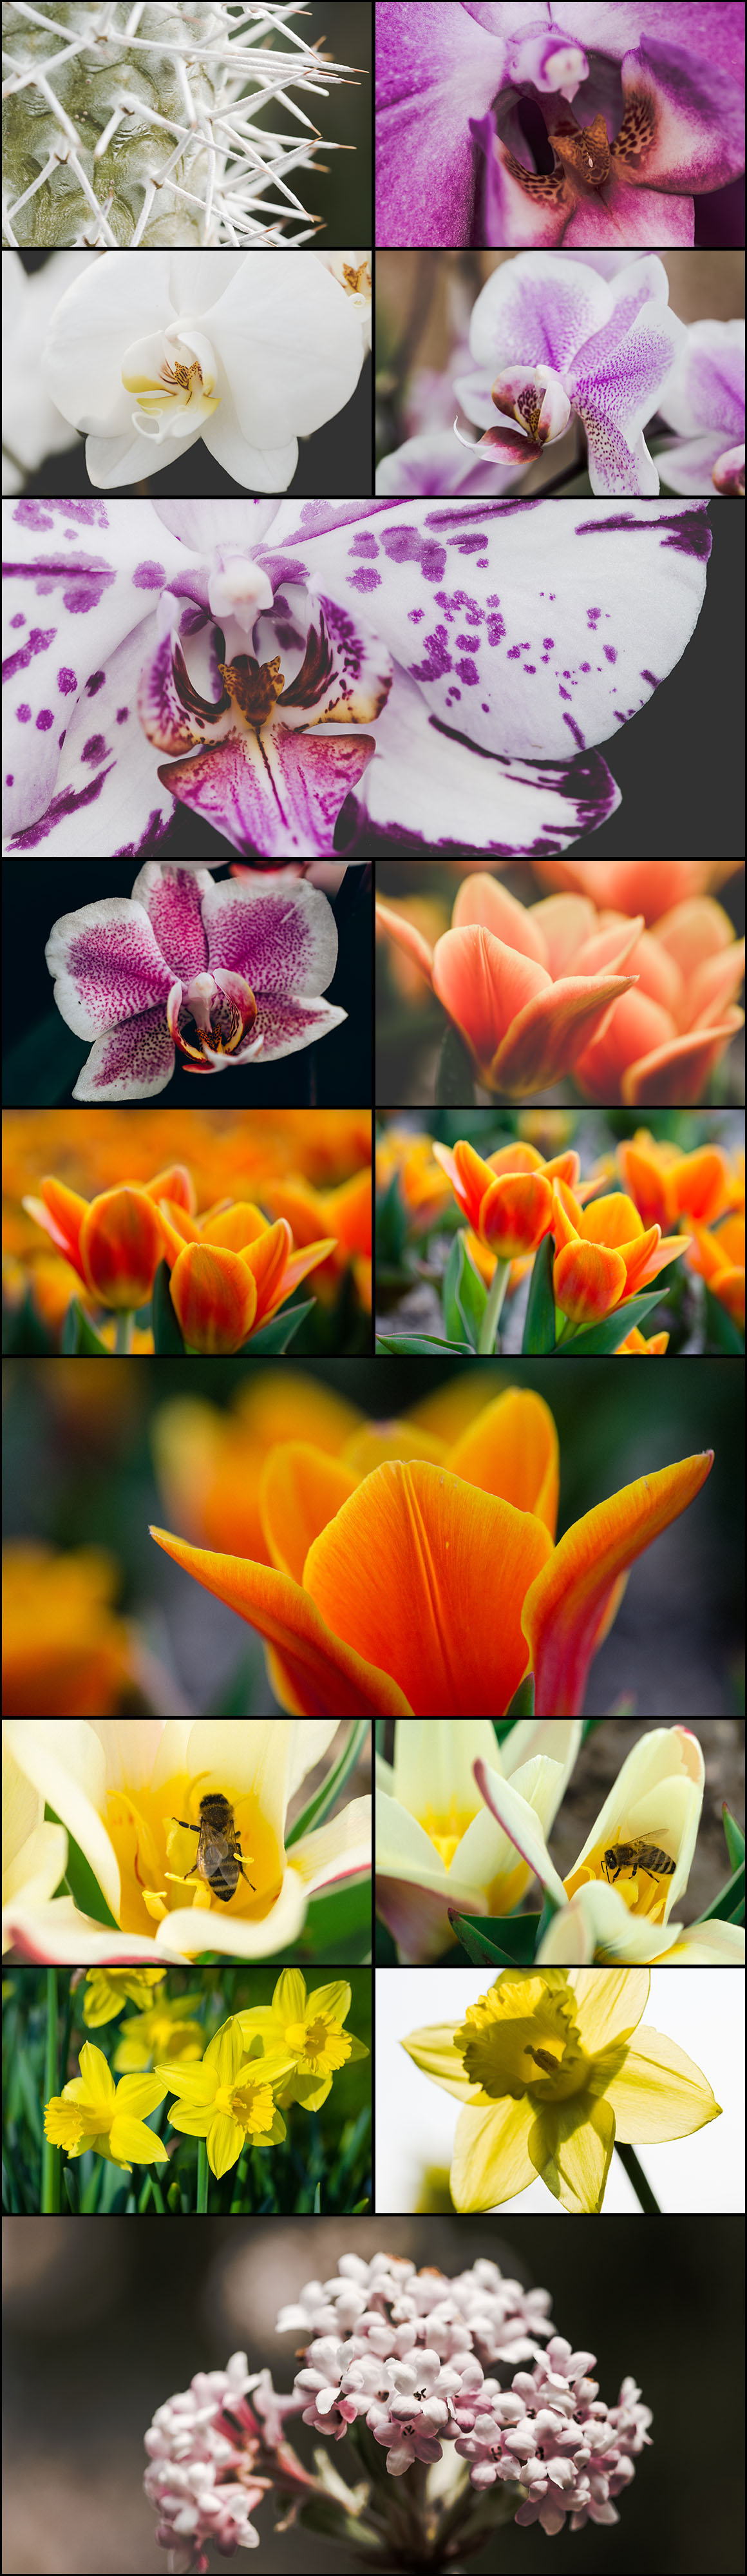 Ultimate Photo Bundle 2016 from DreamyPixel – 700+ Images example image 18